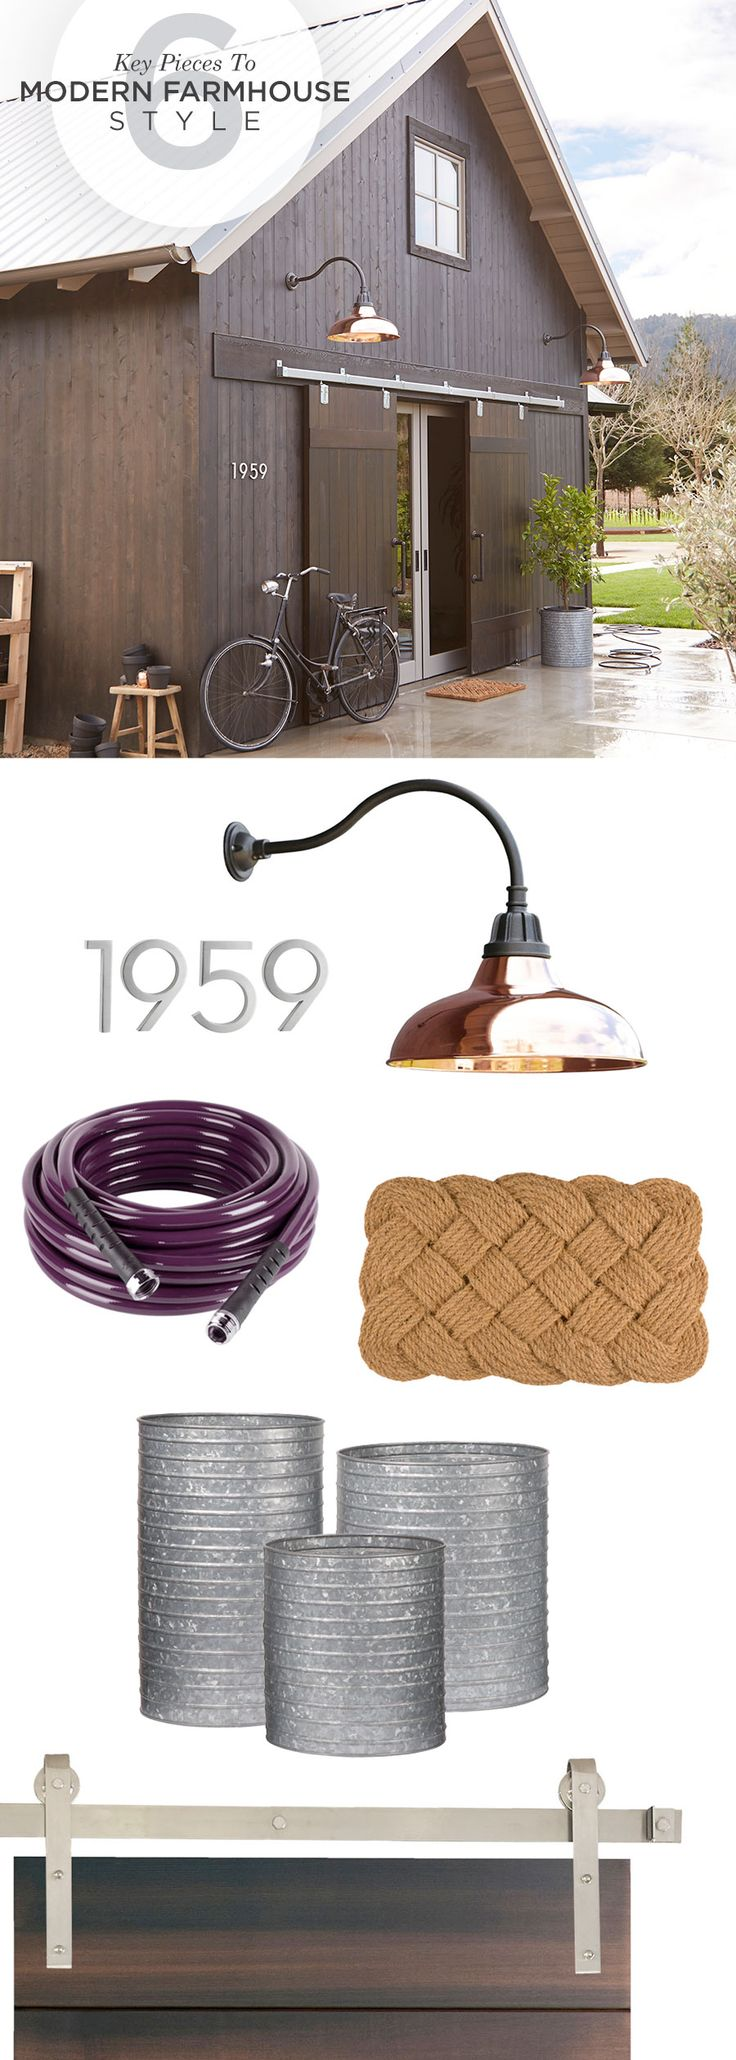 Refresh any outdoor space with warehouse lighting and traditional home accents that bring farmhouse style to life.